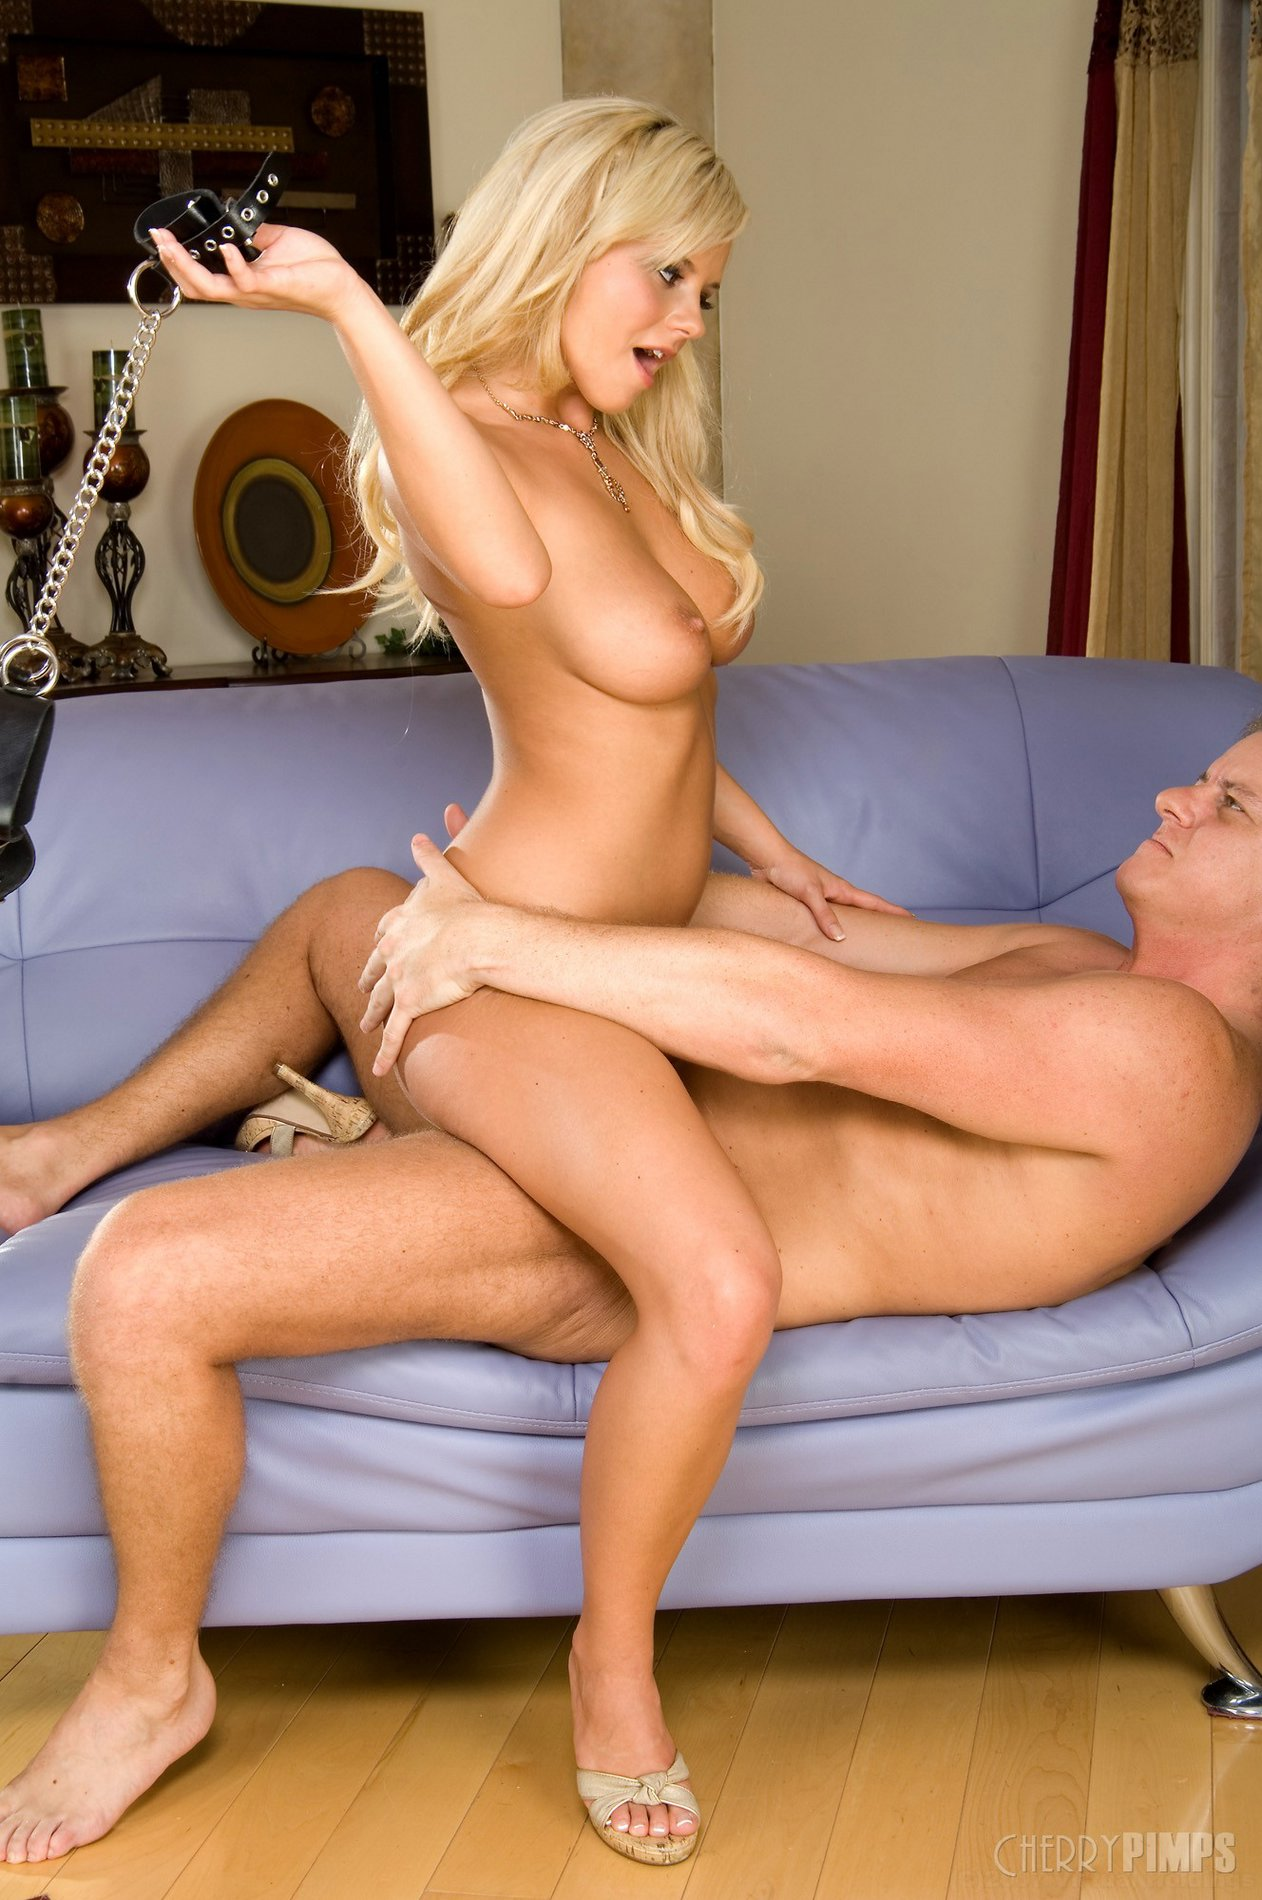 Bree olson now-5780